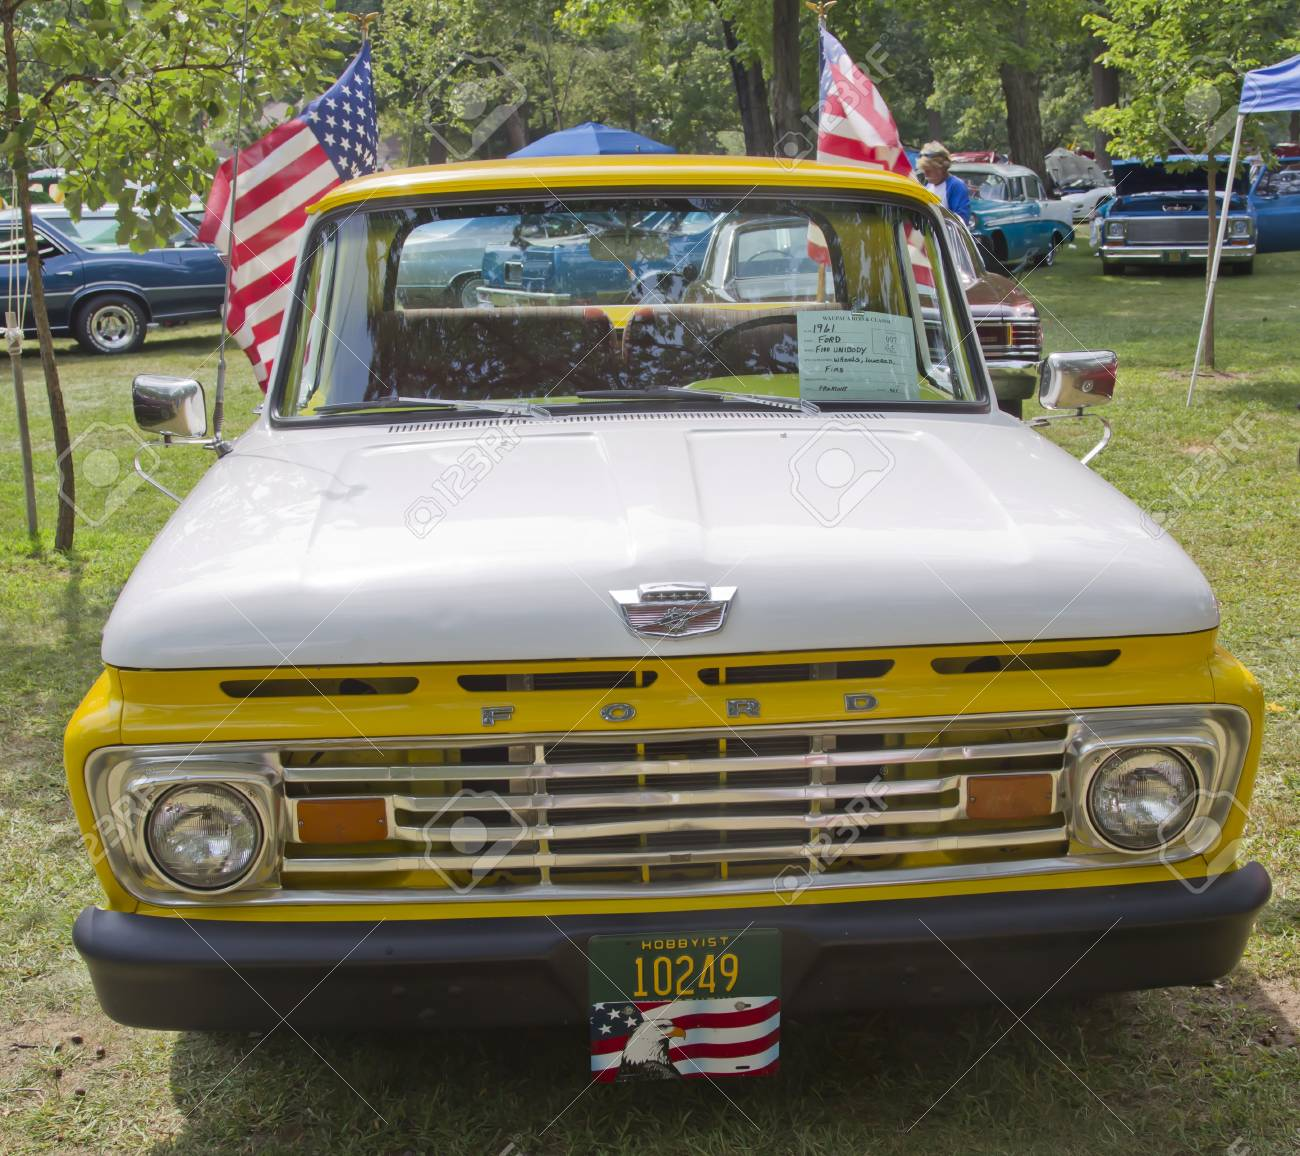 hight resolution of stock photo waupaca wi august 25 front of 1961 ford unibody f100 truck at the 10th annual waupaca rod classic car club car show on august 25